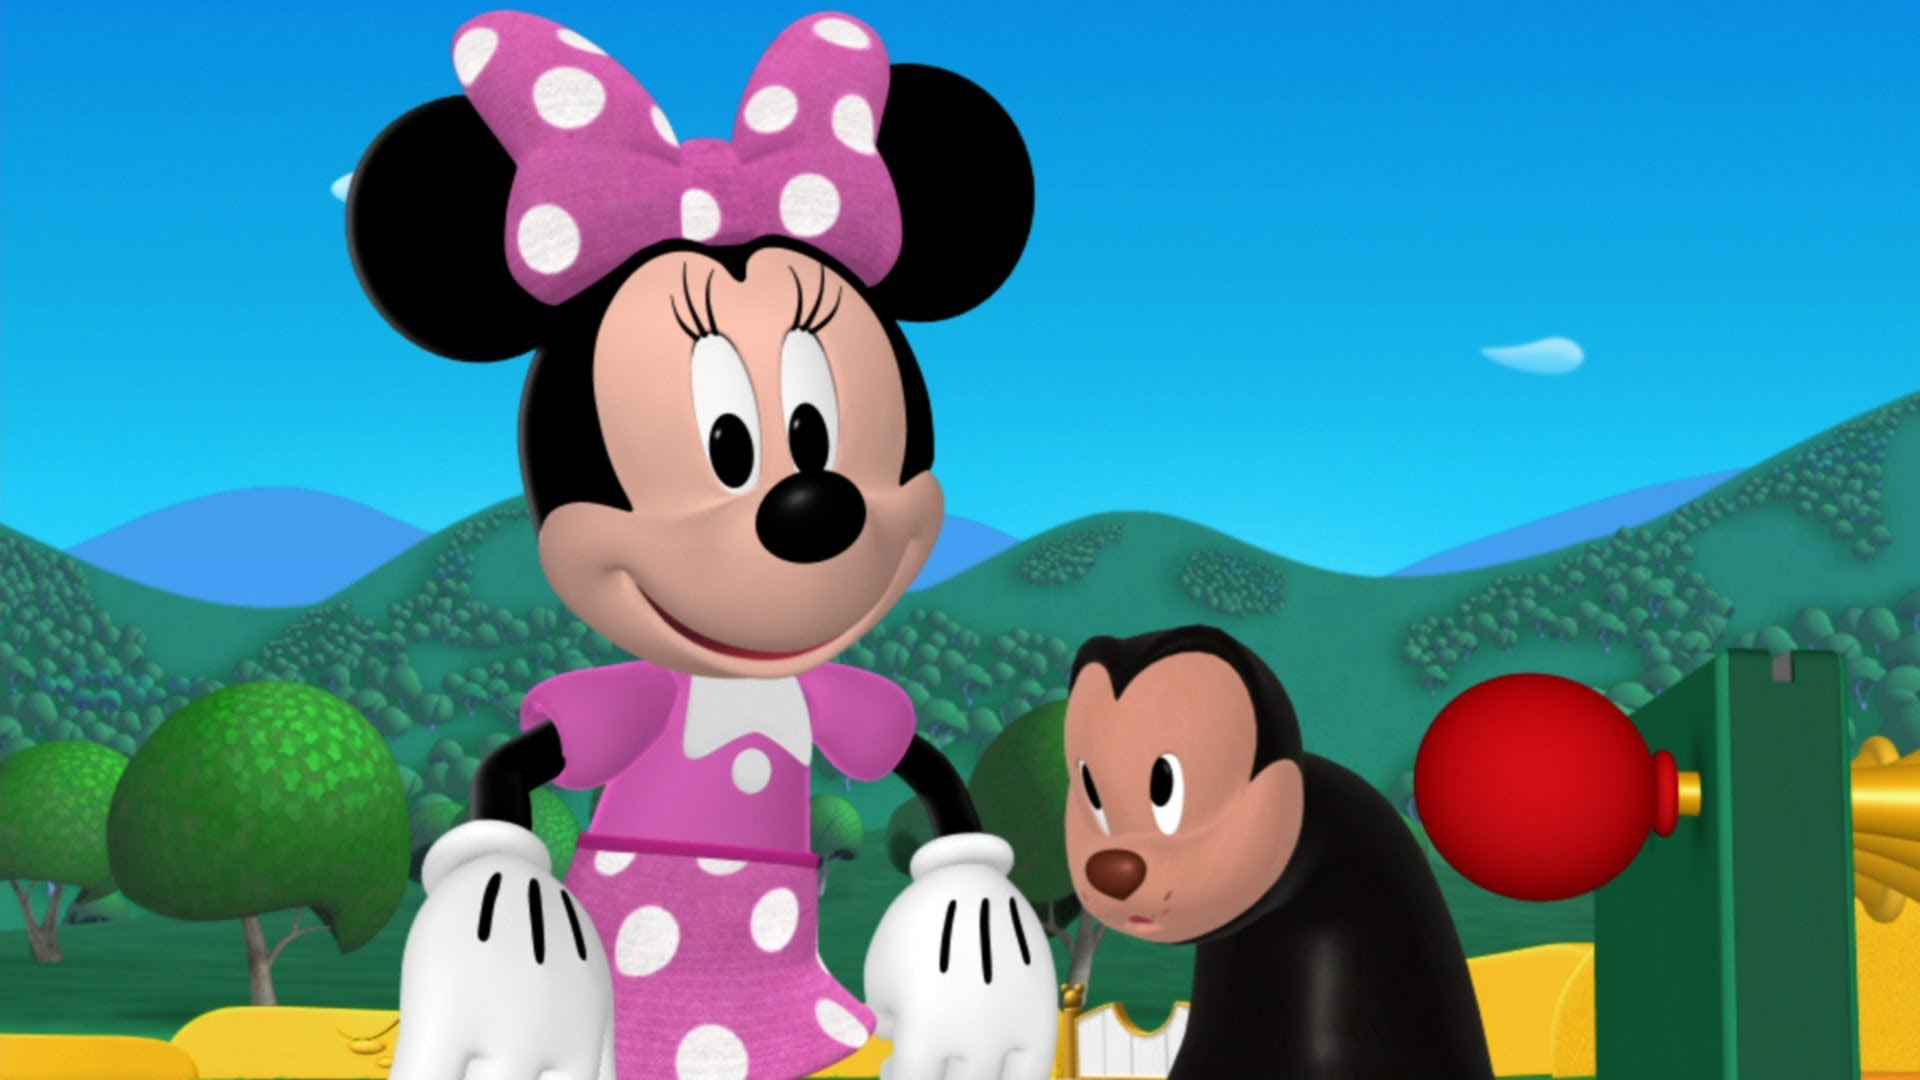 Plutou0027s Playmate (Mickey Mouse Clubhouse Episode) | Disney Wiki | FANDOM  Powered By Wikia